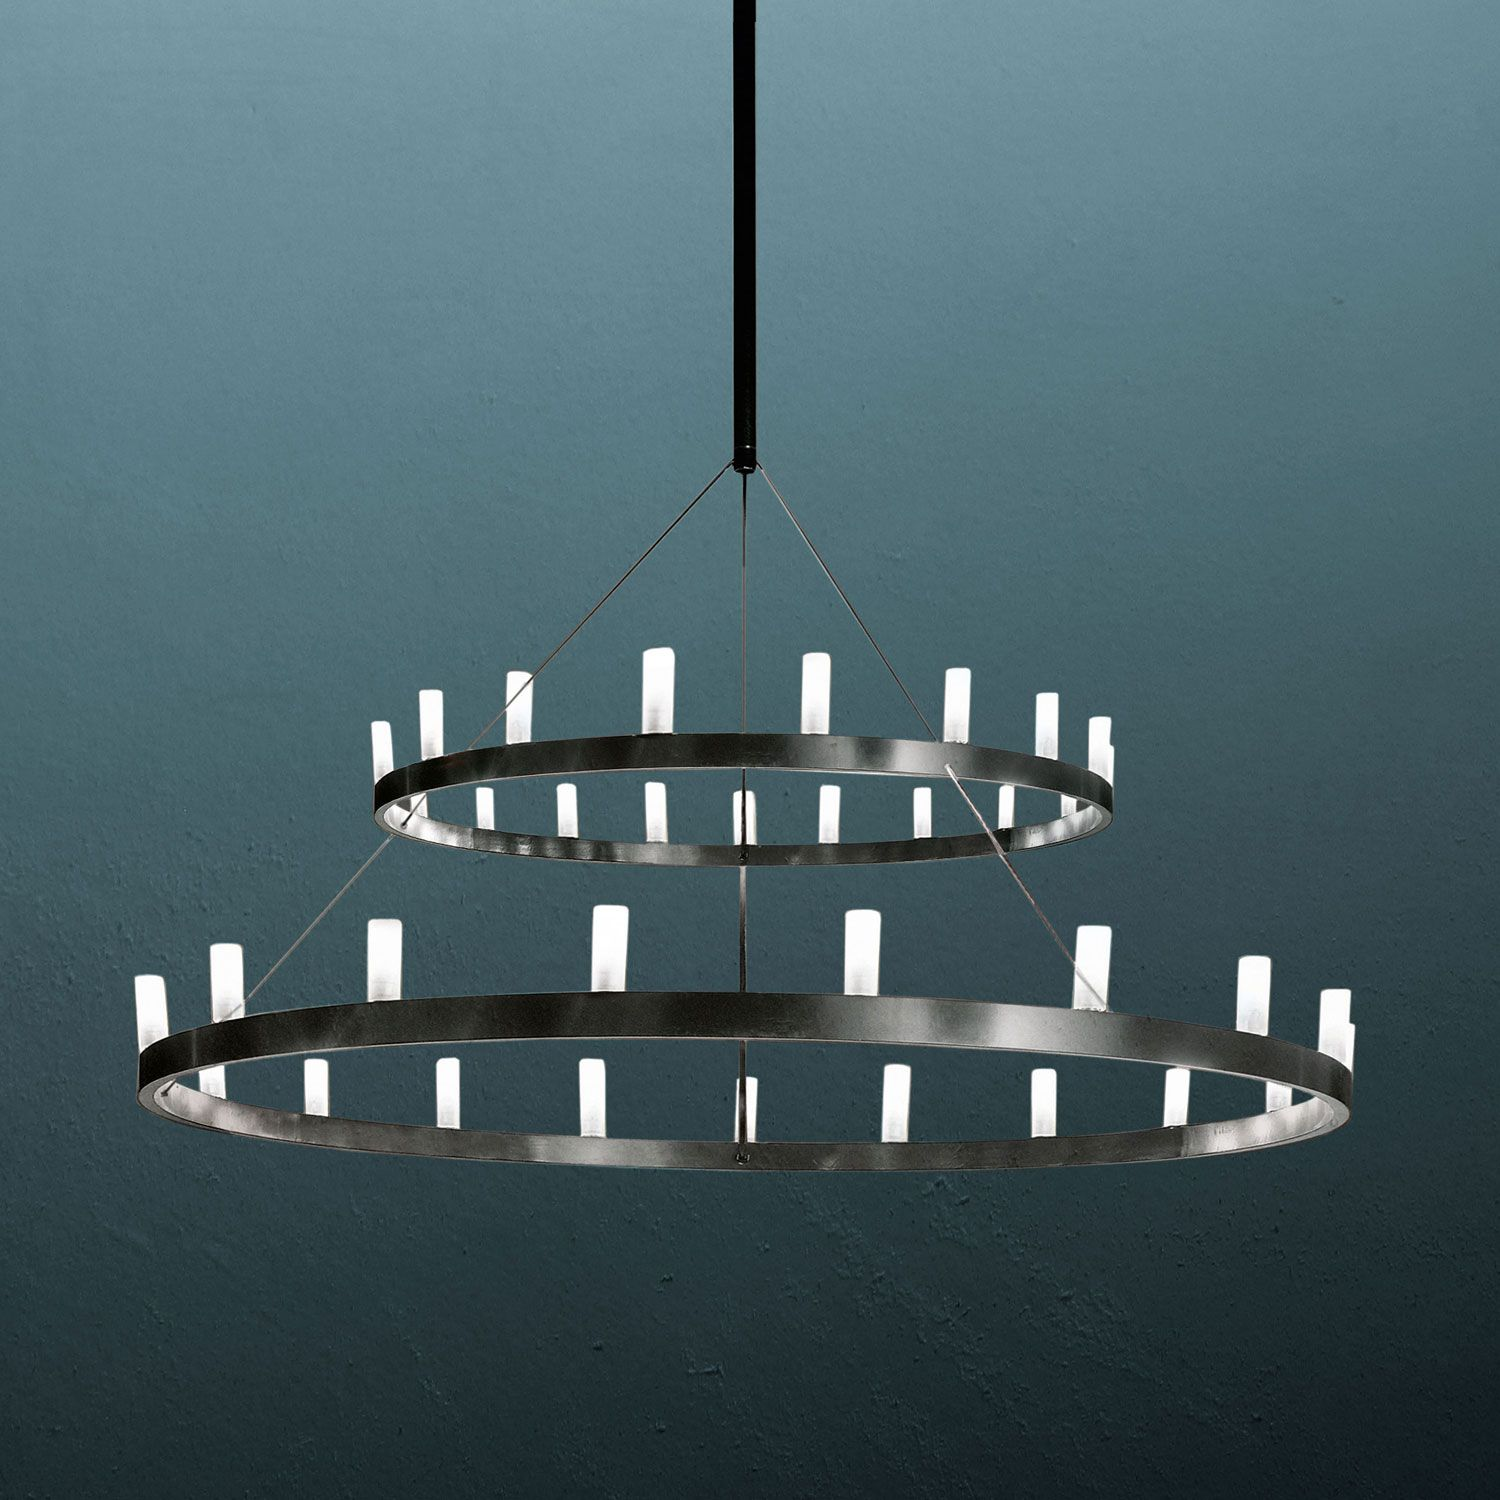 Chandelier double lighting suspension lamp structure in grey product chandelier manufacturer fontanaarte designer david chipperfield year 2004 architonic id 2060539 arubaitofo Choice Image